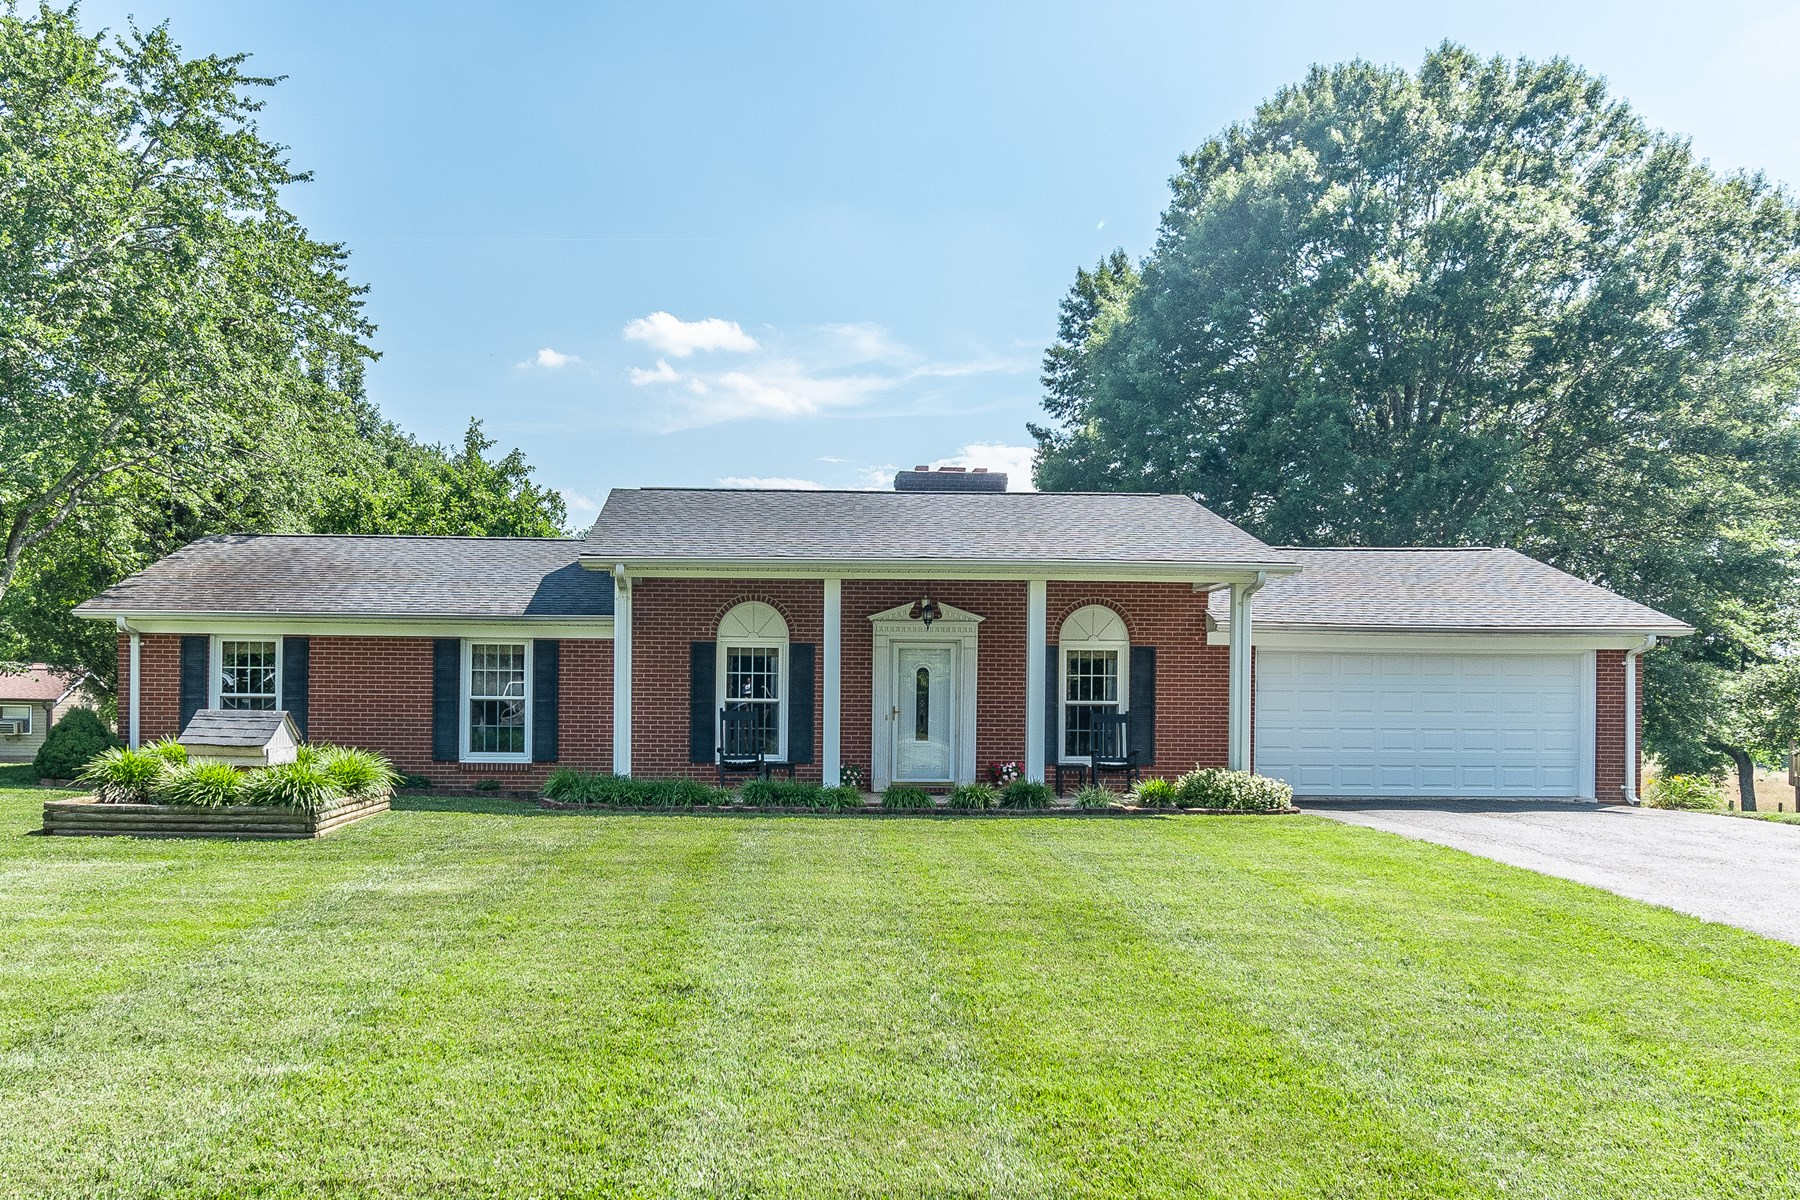 Home for sale in Mount Airy